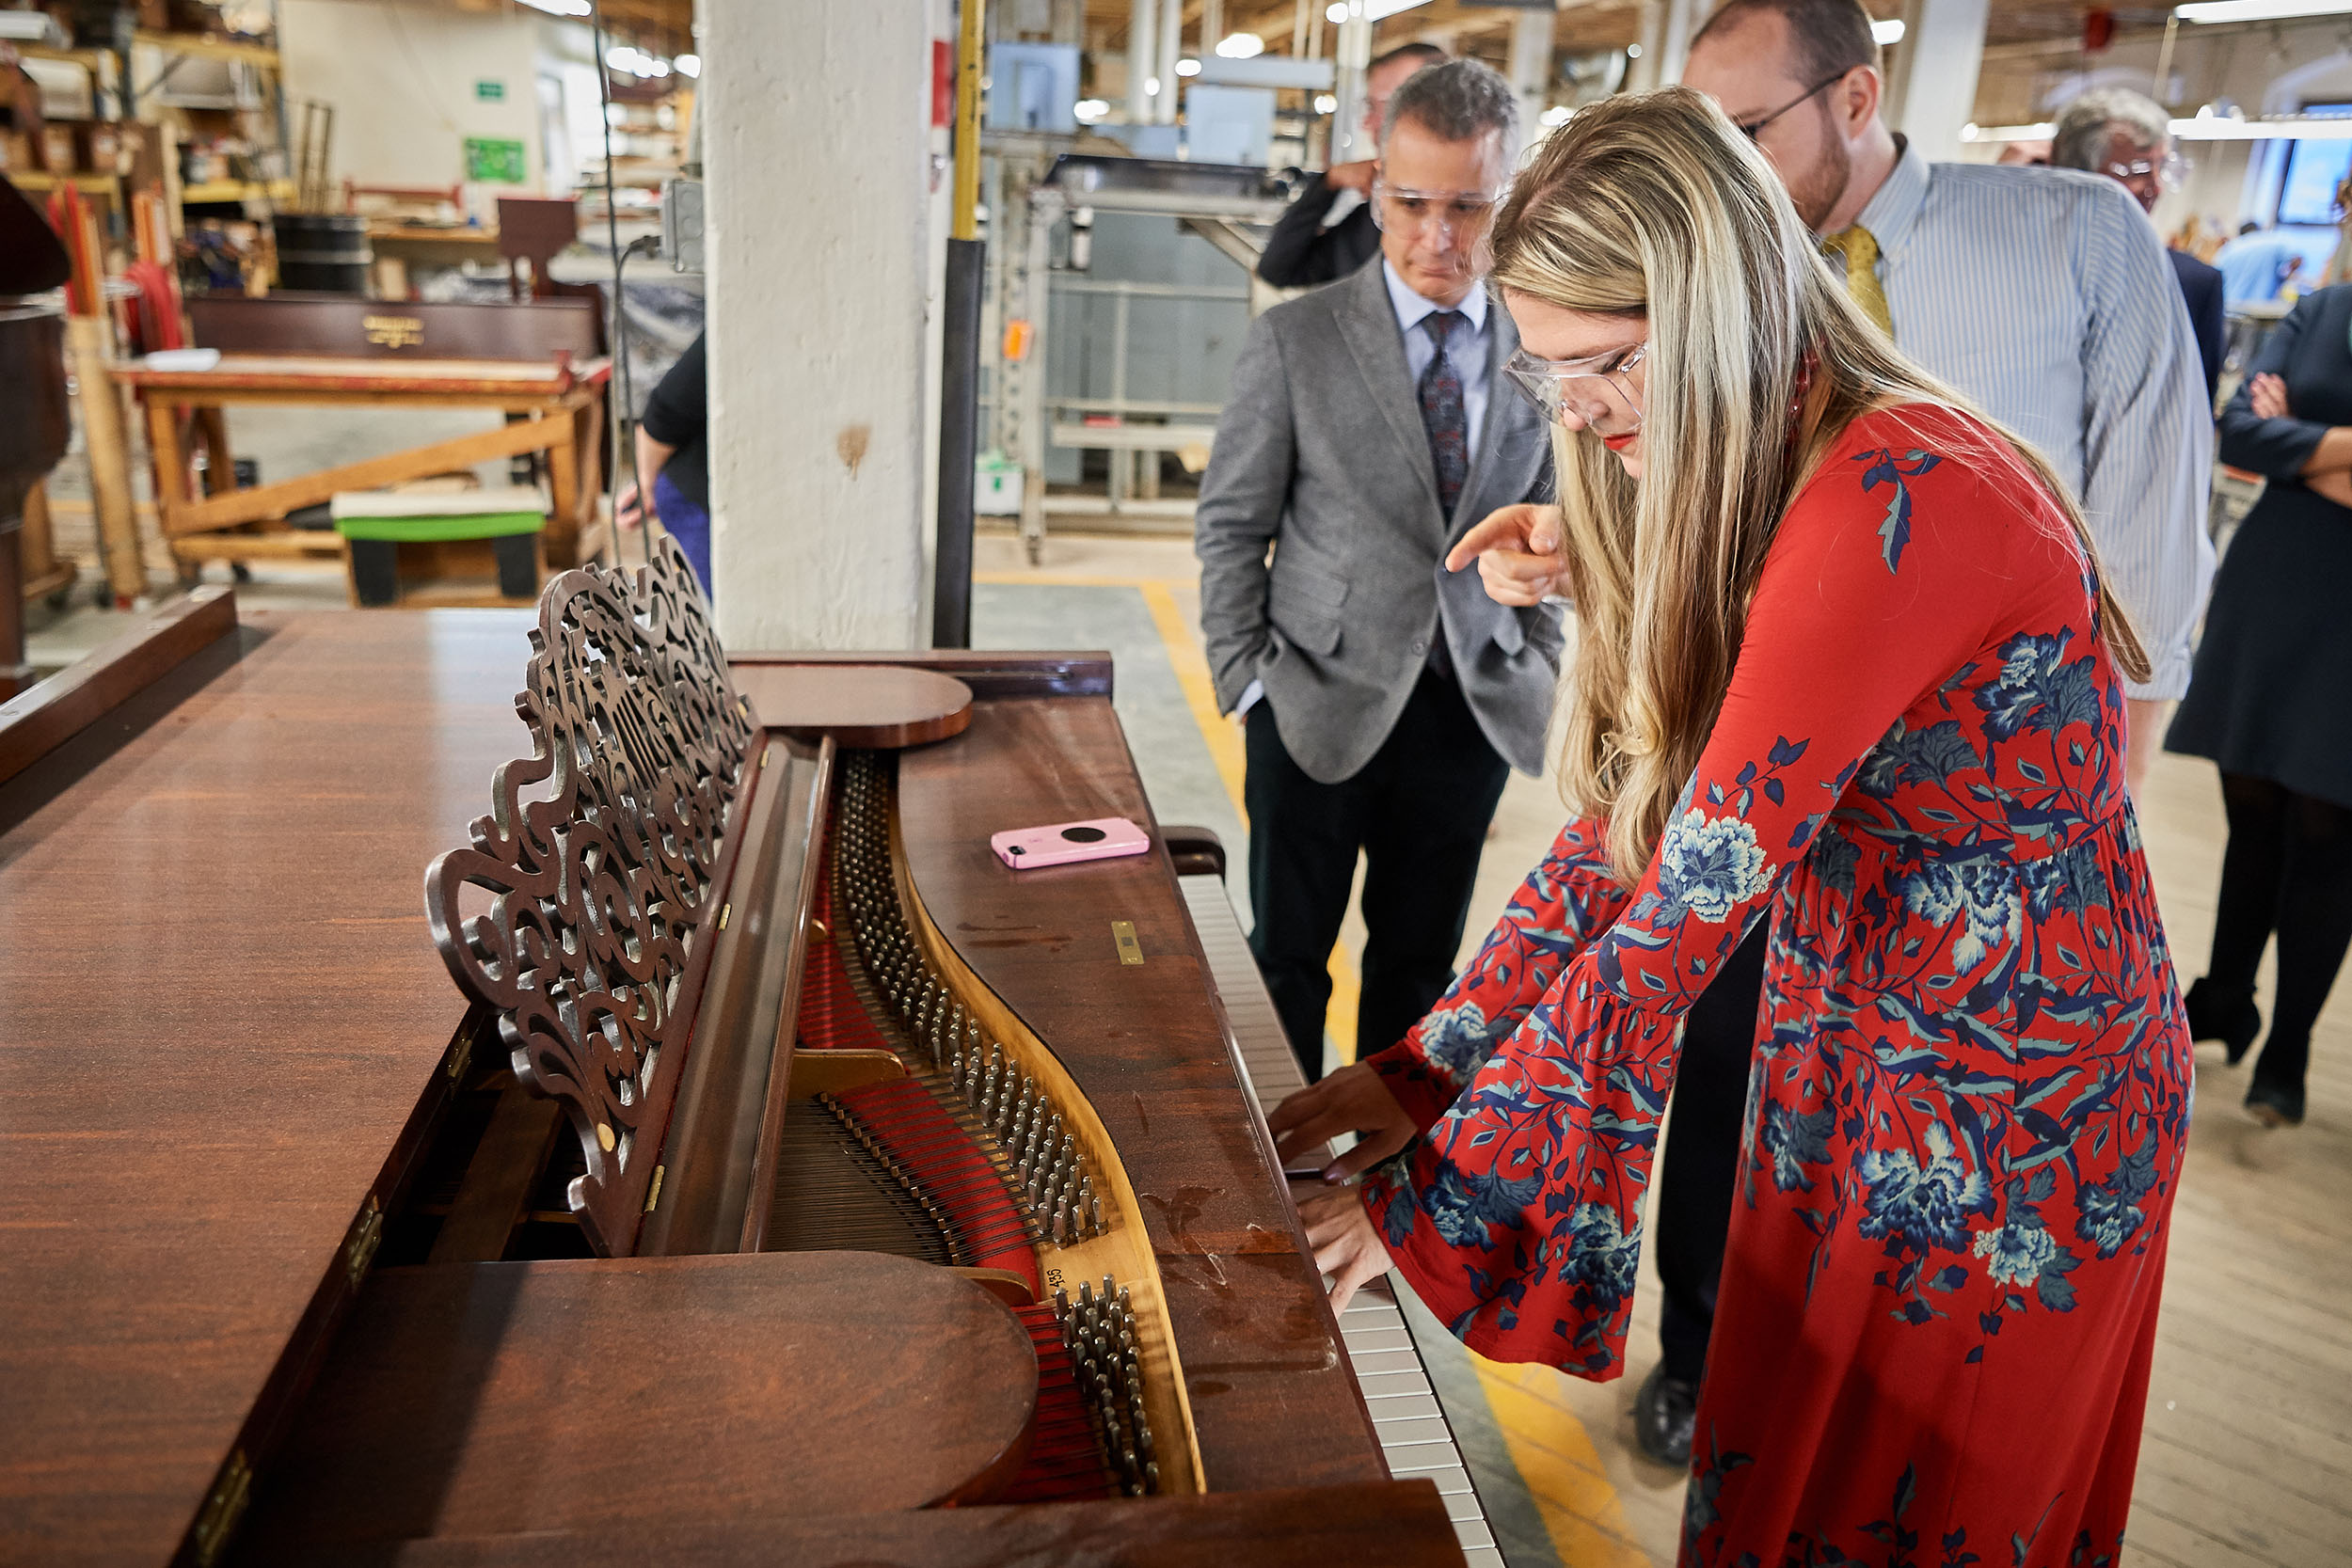 Angelina Gadeliya, assistant professor in Residence of Piano and coordinator of keyboard studies, touches the keyboard of a 1881 Steinway & Sons piano